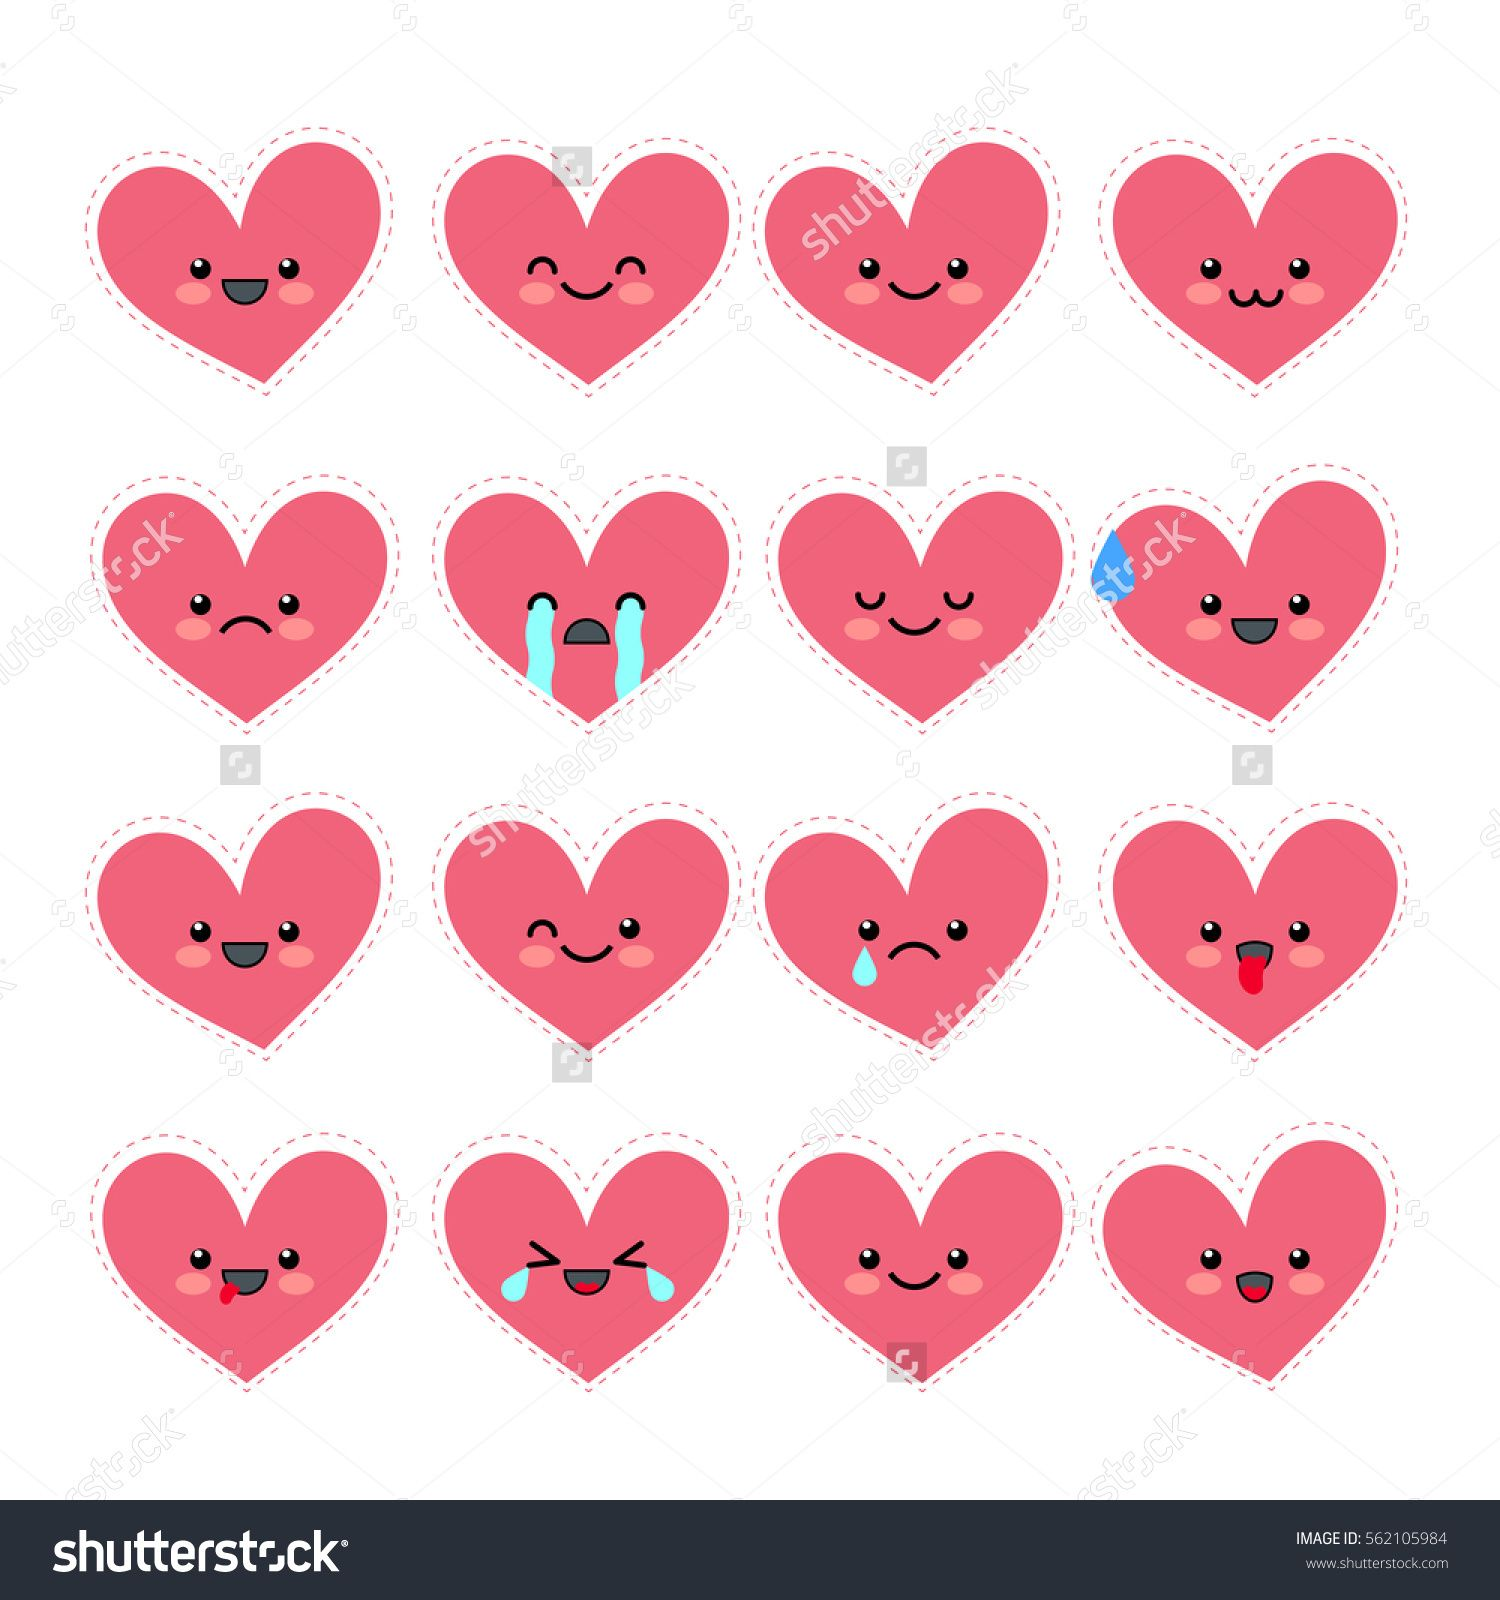 Various Emotions Of The Character. Emoji Collections Of Valentineu0027s Day